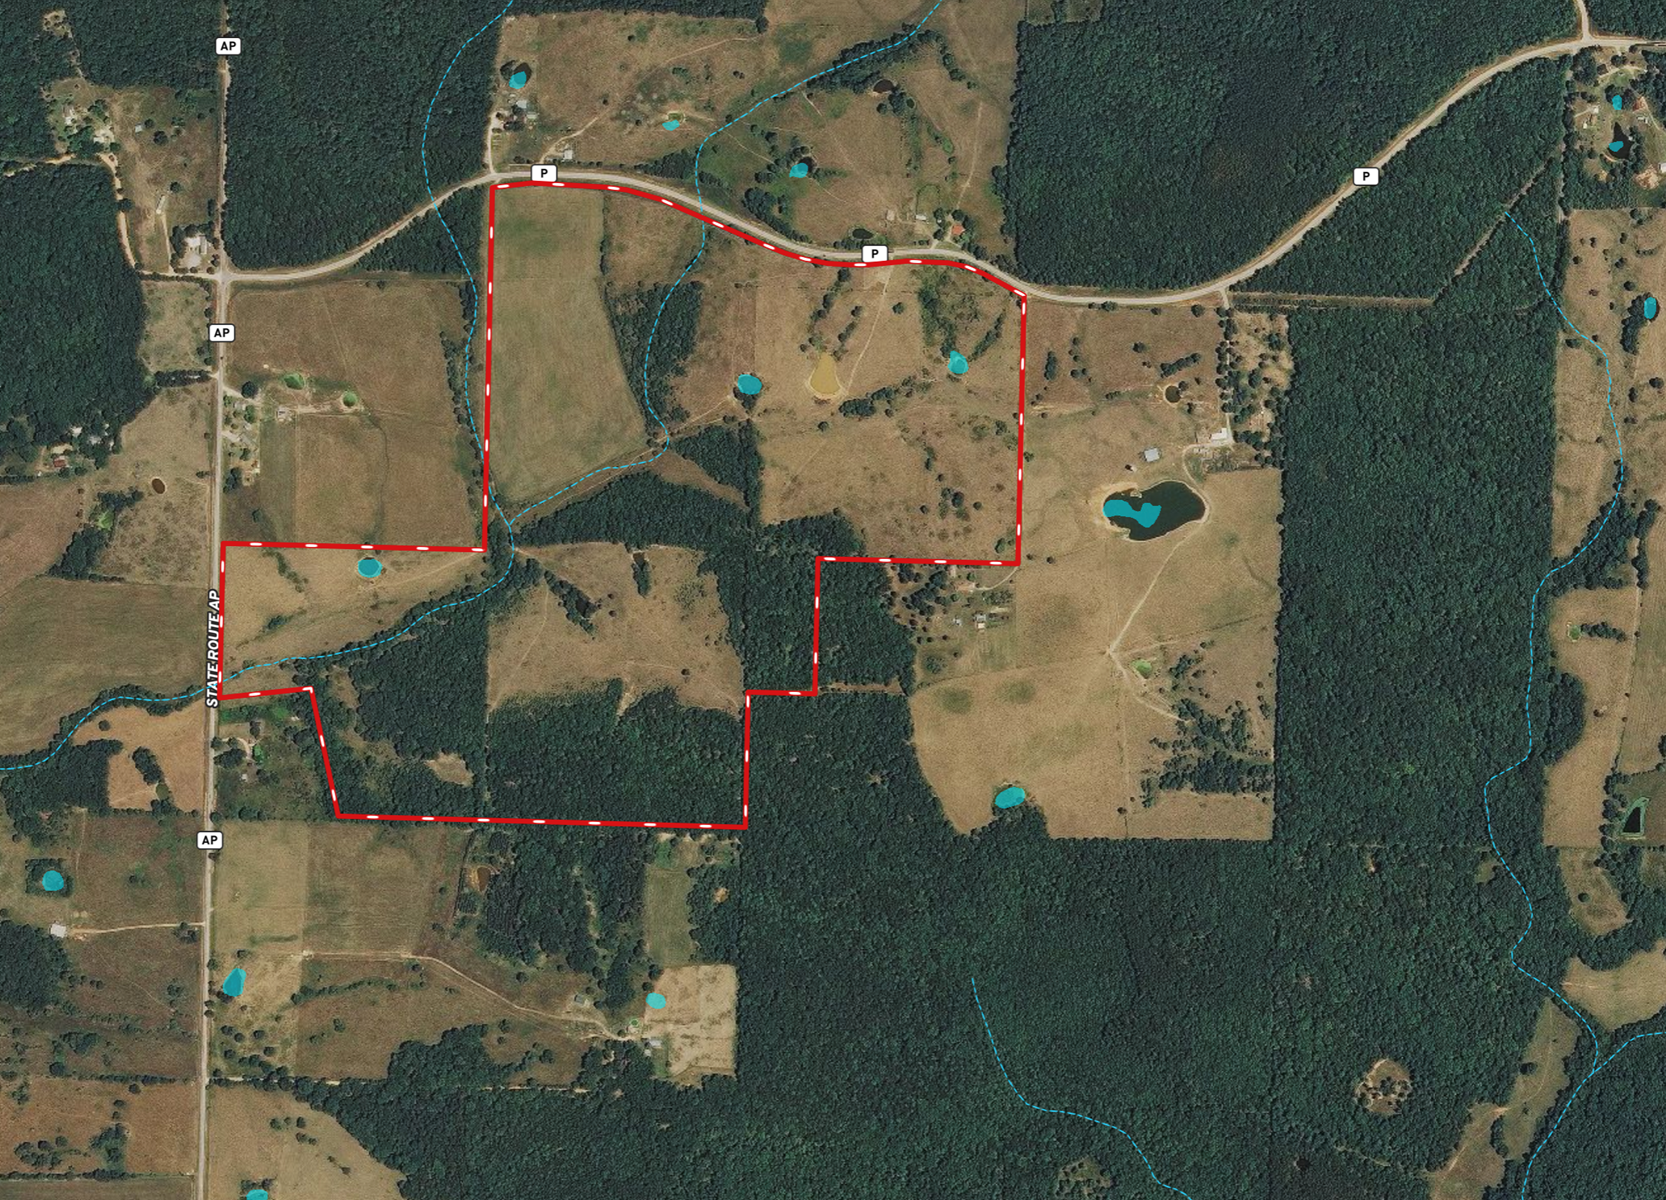 Missouri Ozarks Land for Sale - Farming, Hunting, Building